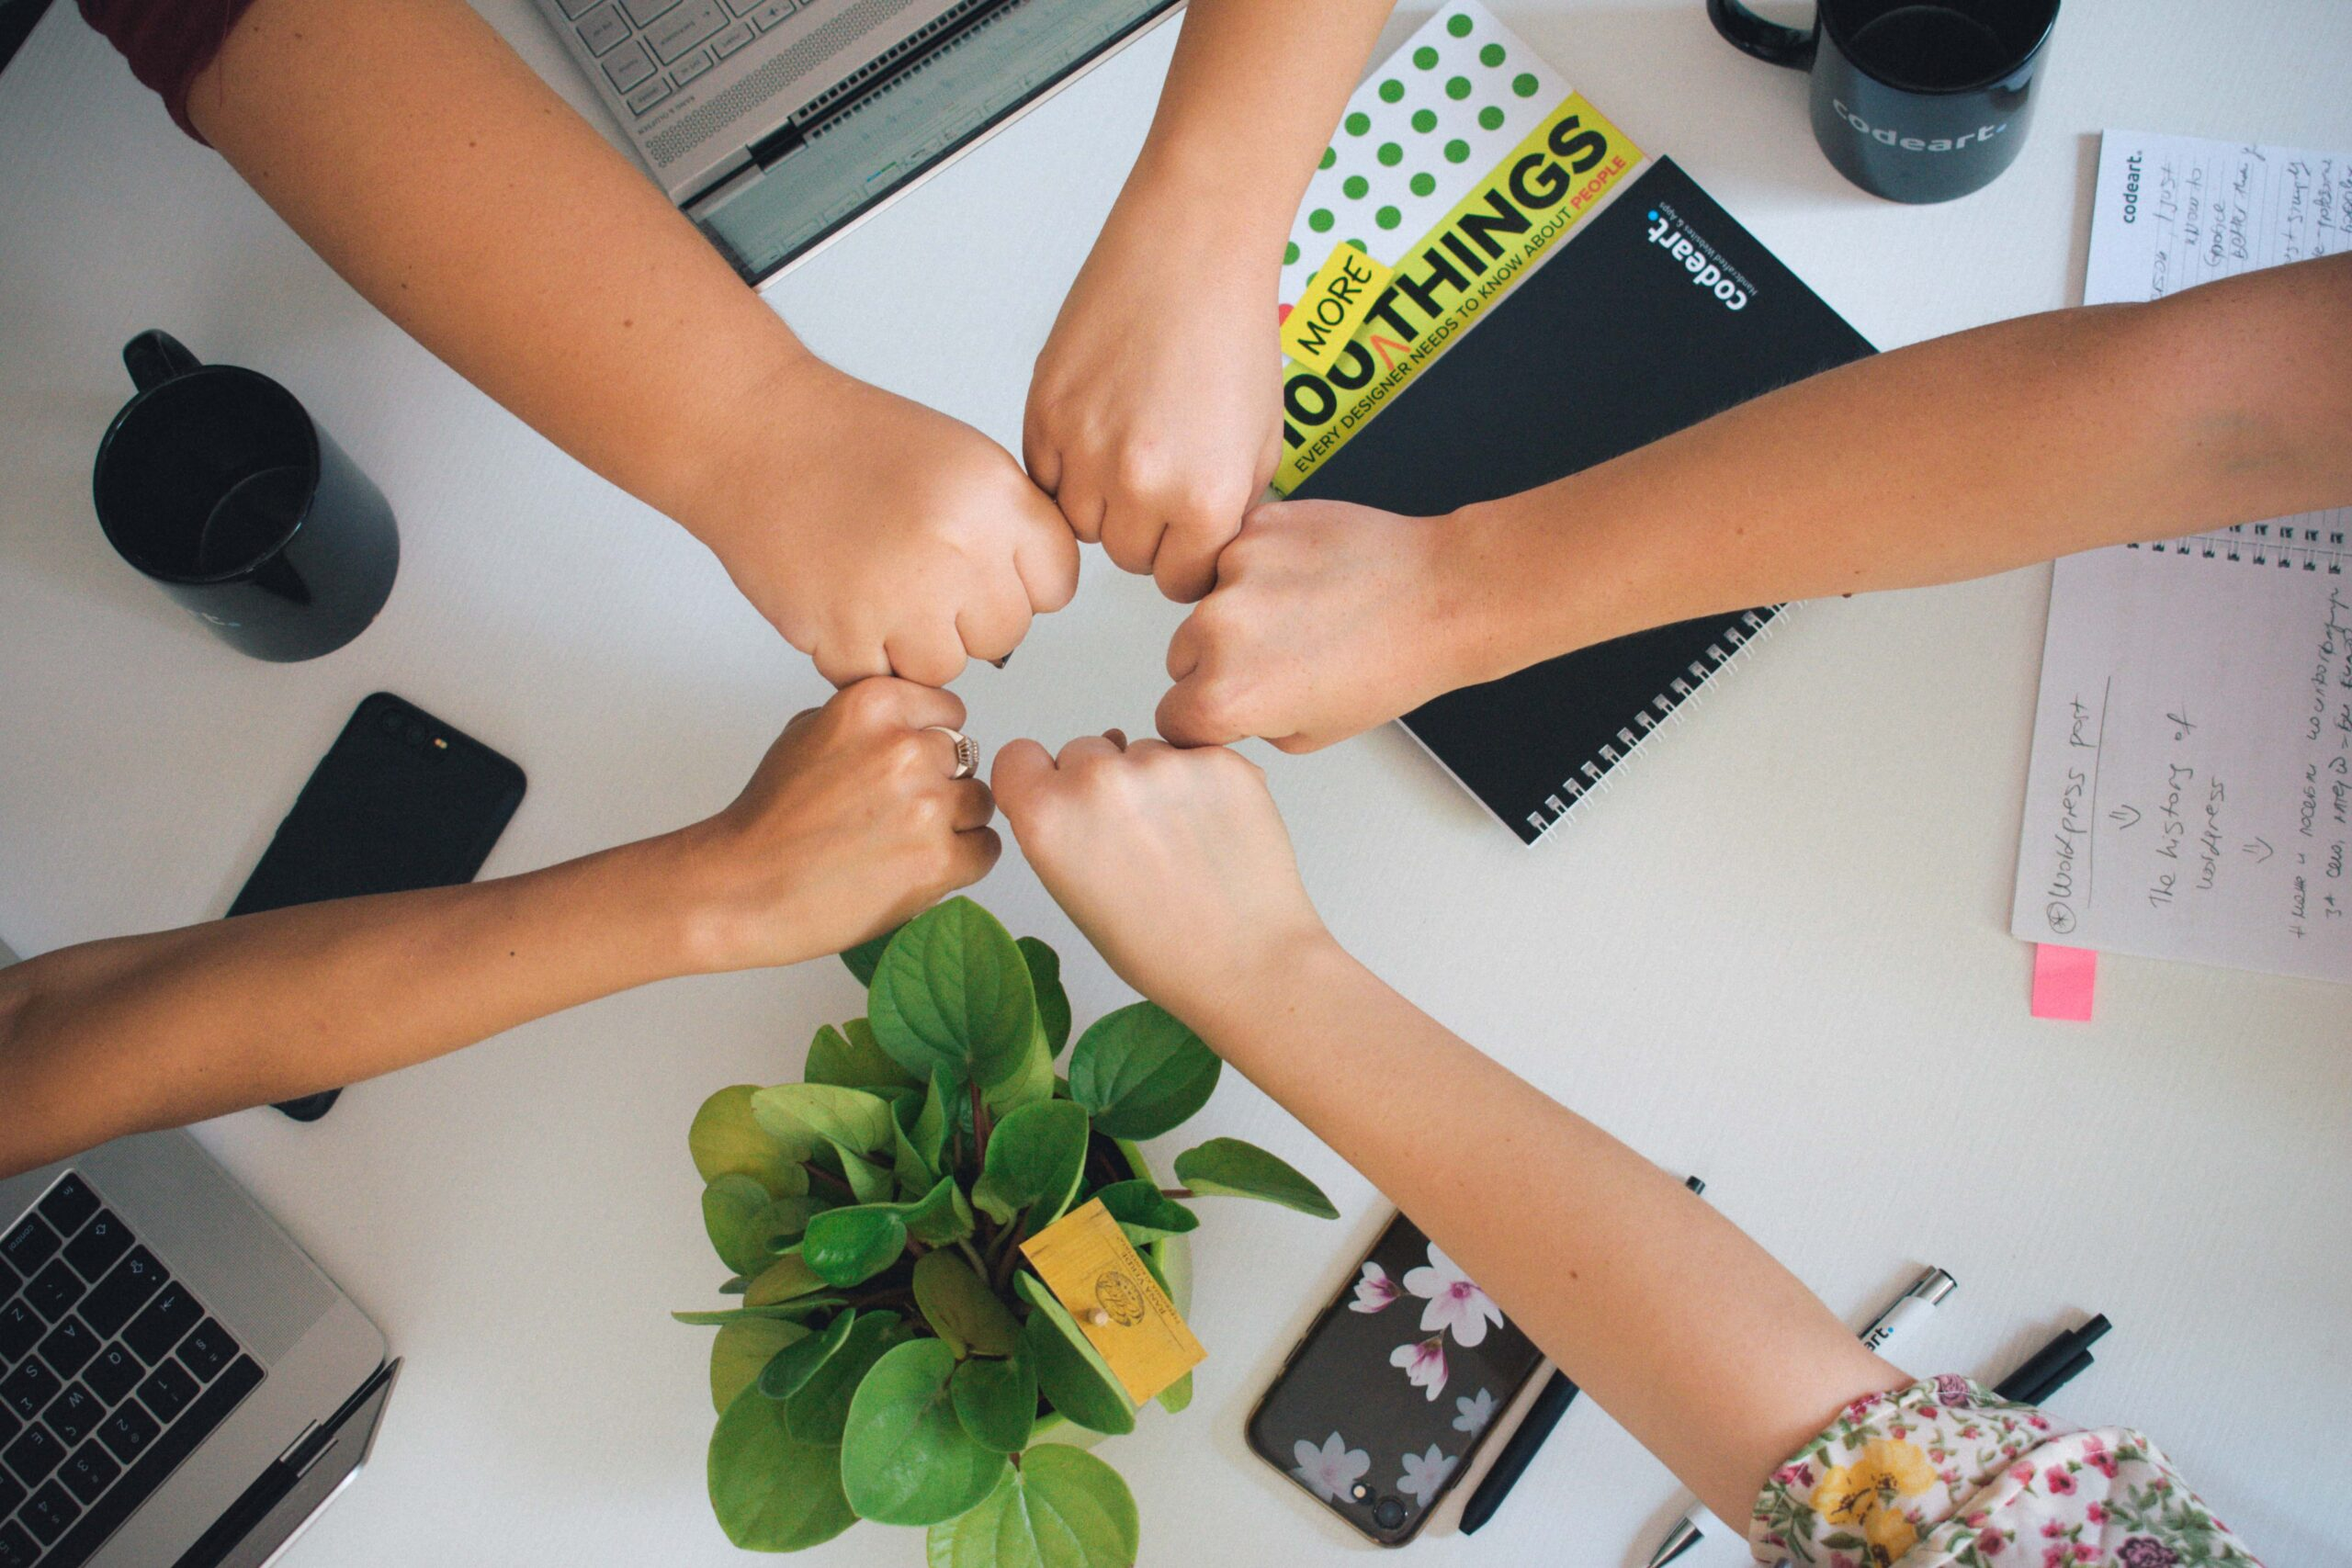 Leadership and collaboration at the workplace